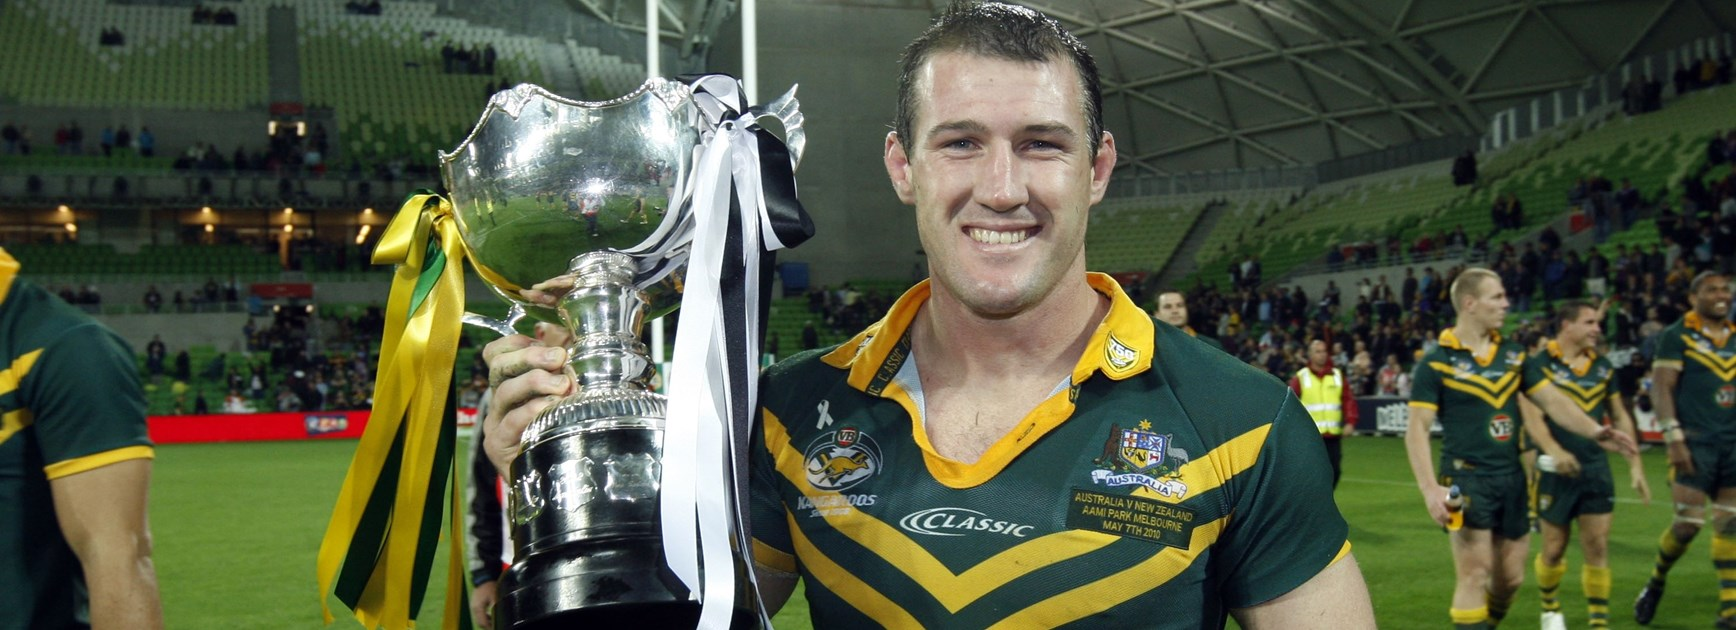 Paul Gallen after a Test match in 2010.